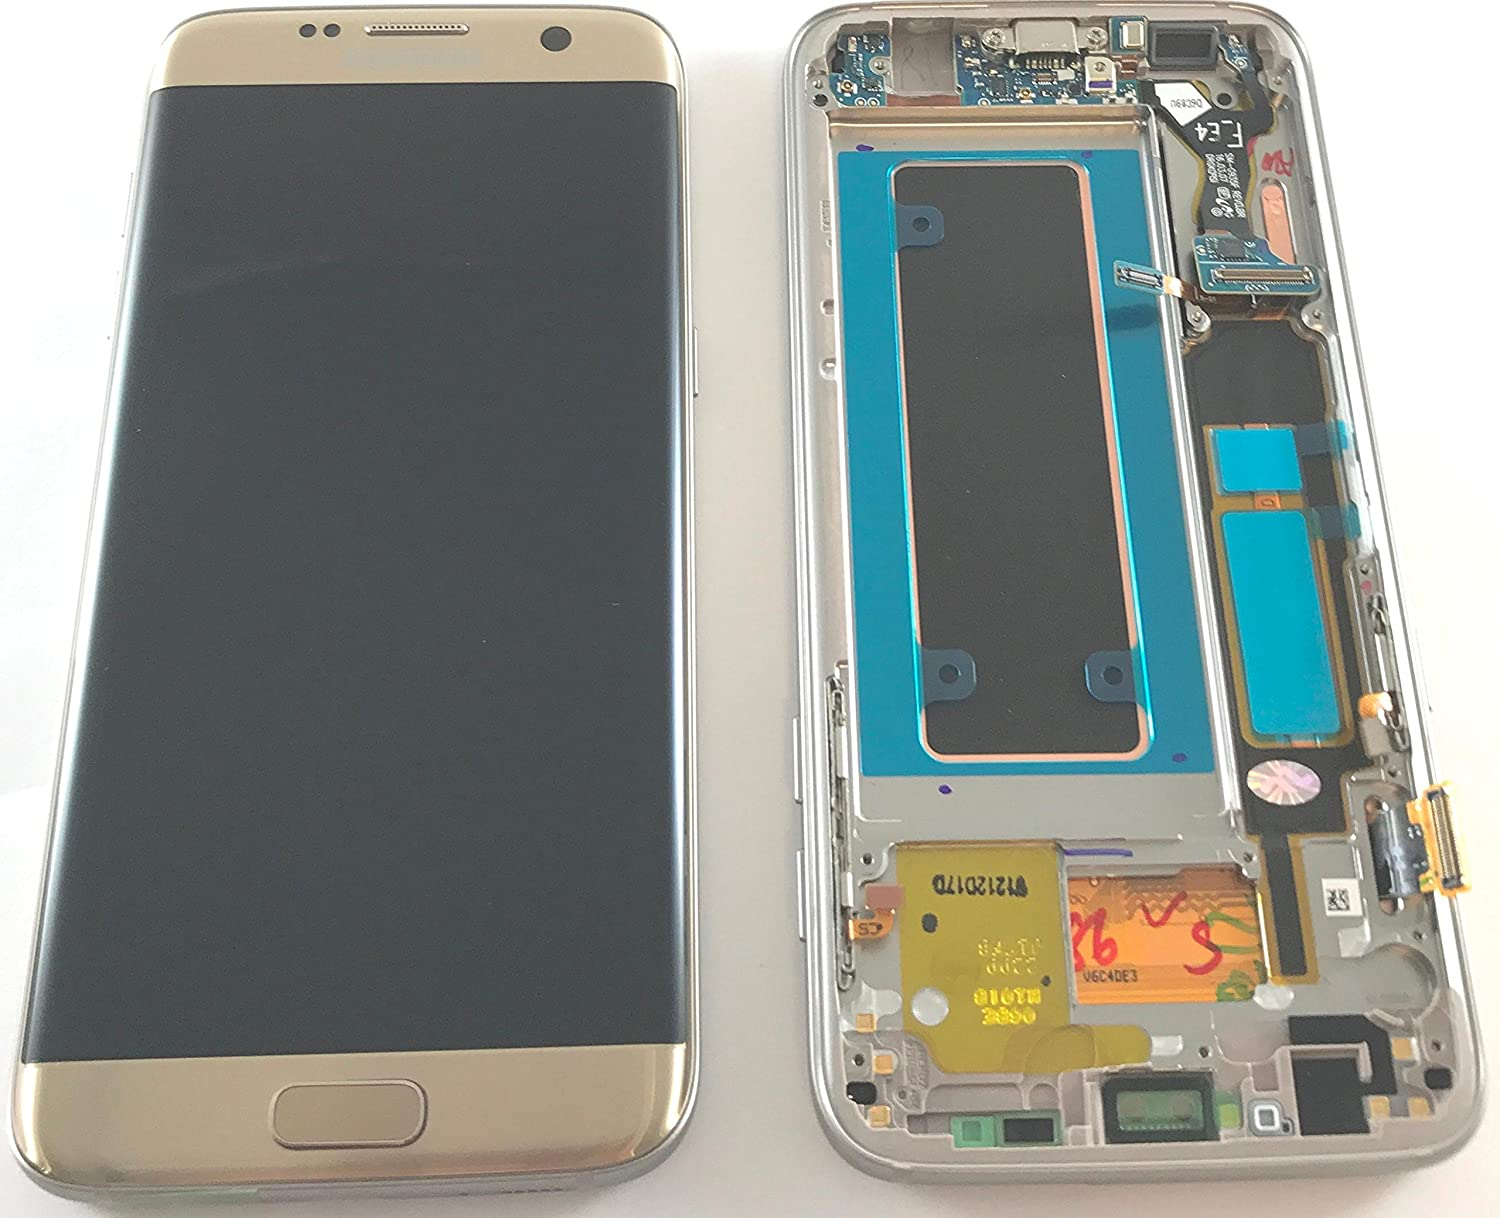 Samsung Genuine Galaxy S7 Edge G935f Lcd Touch Screen Digitizer Touchscreen Gold Original Complete With Frame Home Button Side Keys Microphone And Usb Flex Not Compatible